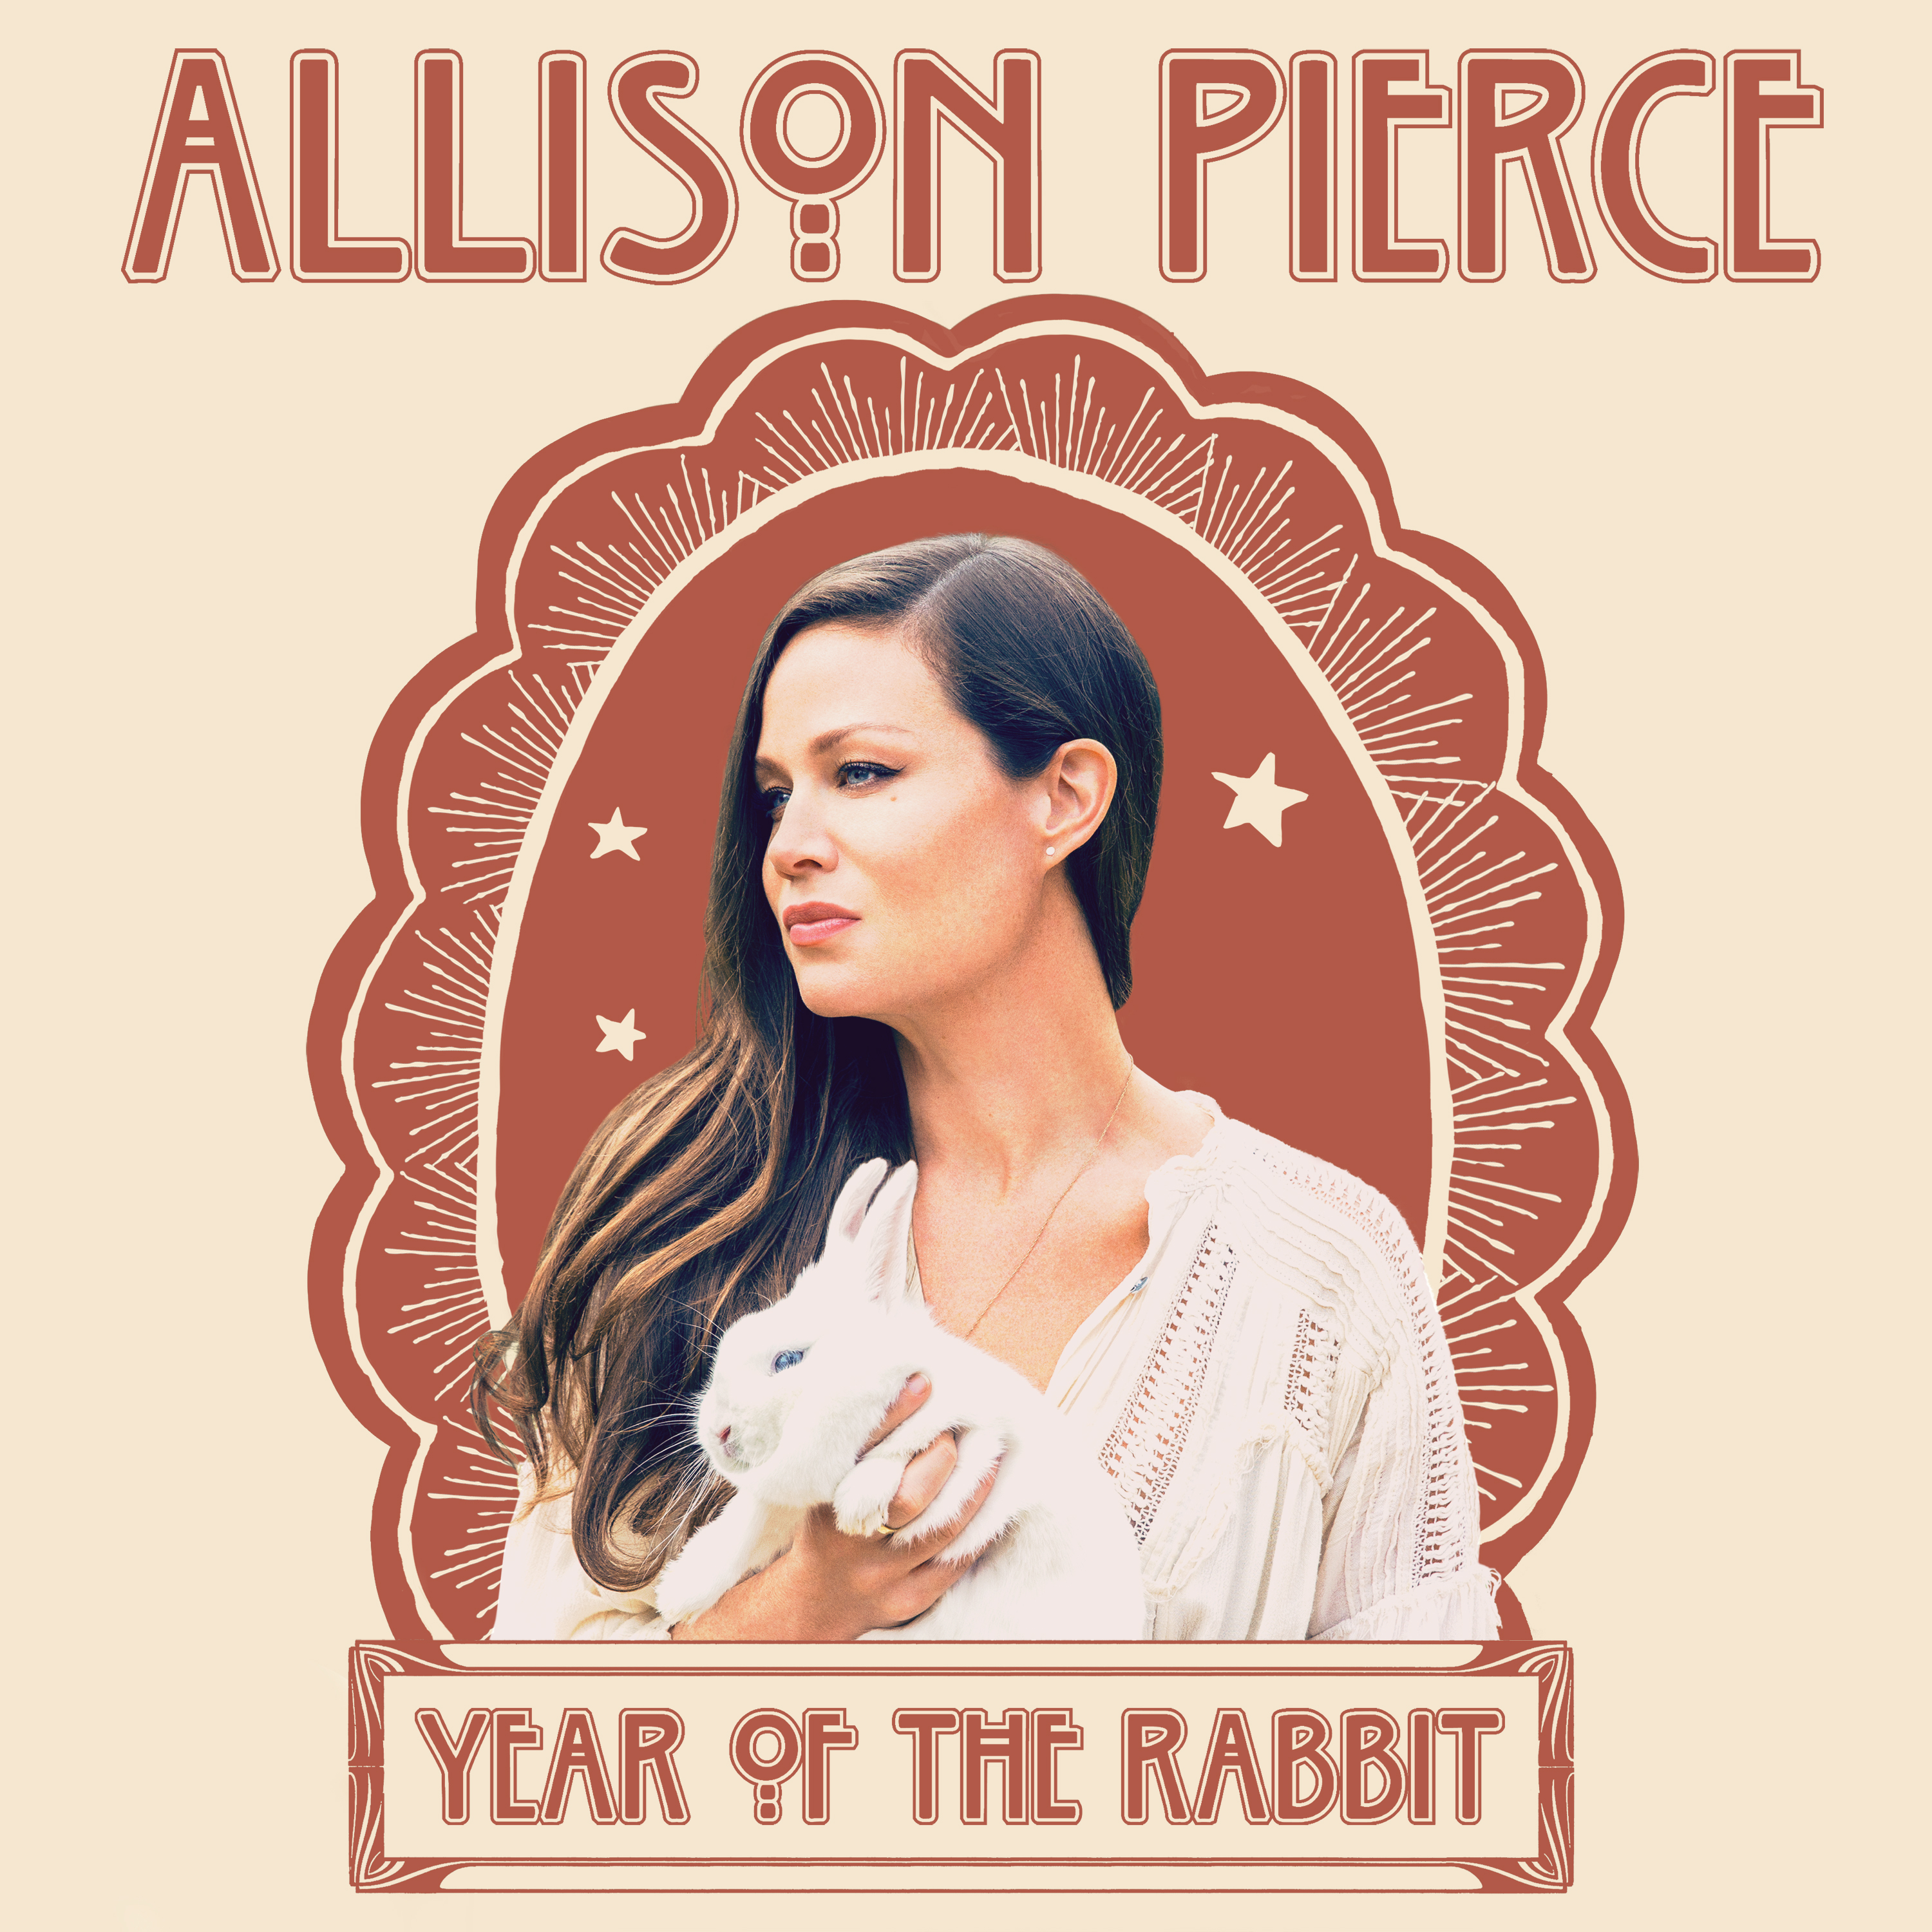 allison pierce singer songwriter teams with producer ethan johns for solo debut album year of. Black Bedroom Furniture Sets. Home Design Ideas